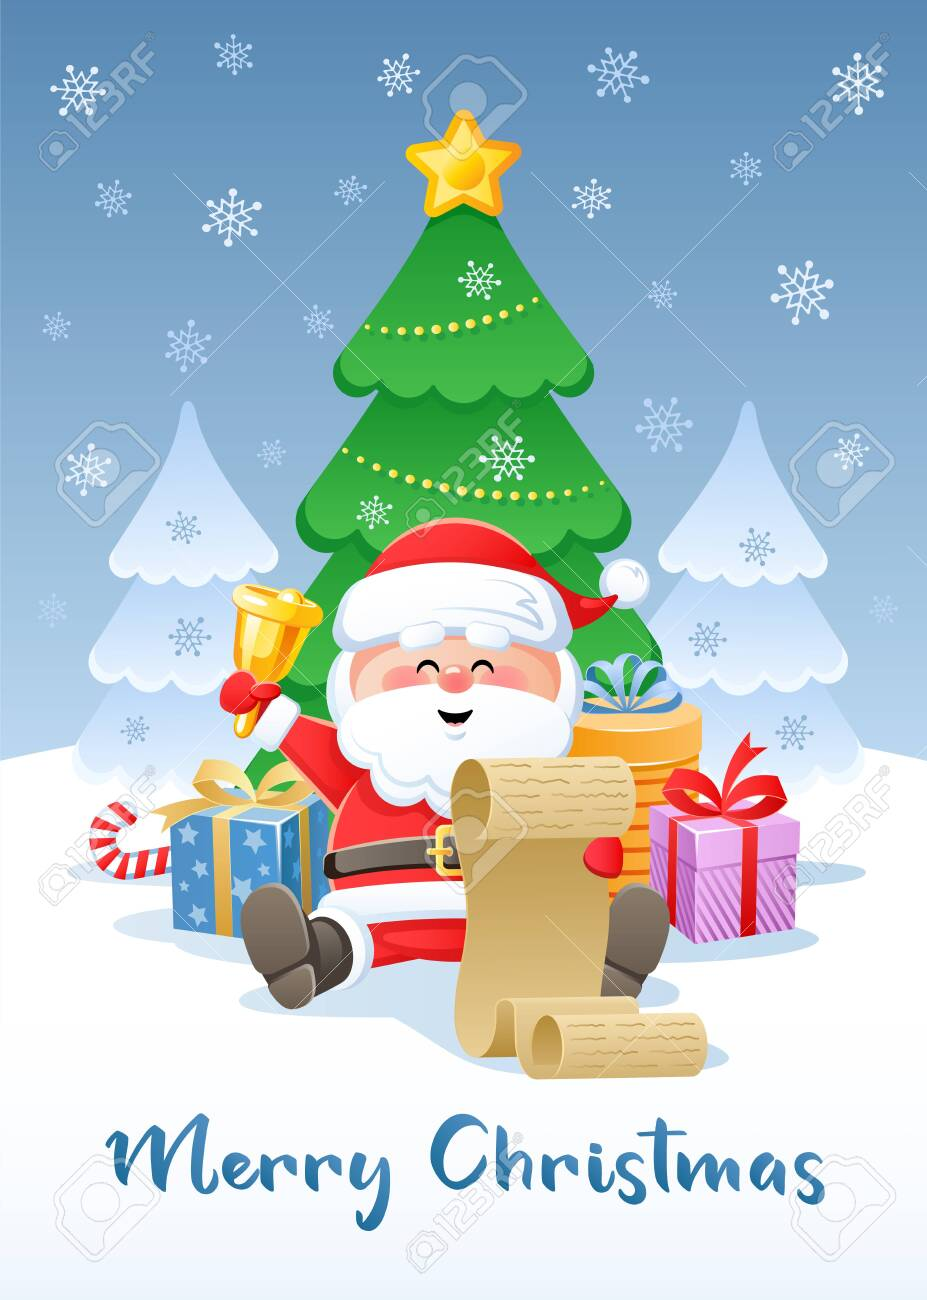 Merry Christmas Funny Images.Merry Christmas Greeting Card With Funny Santa Claus Flat Design